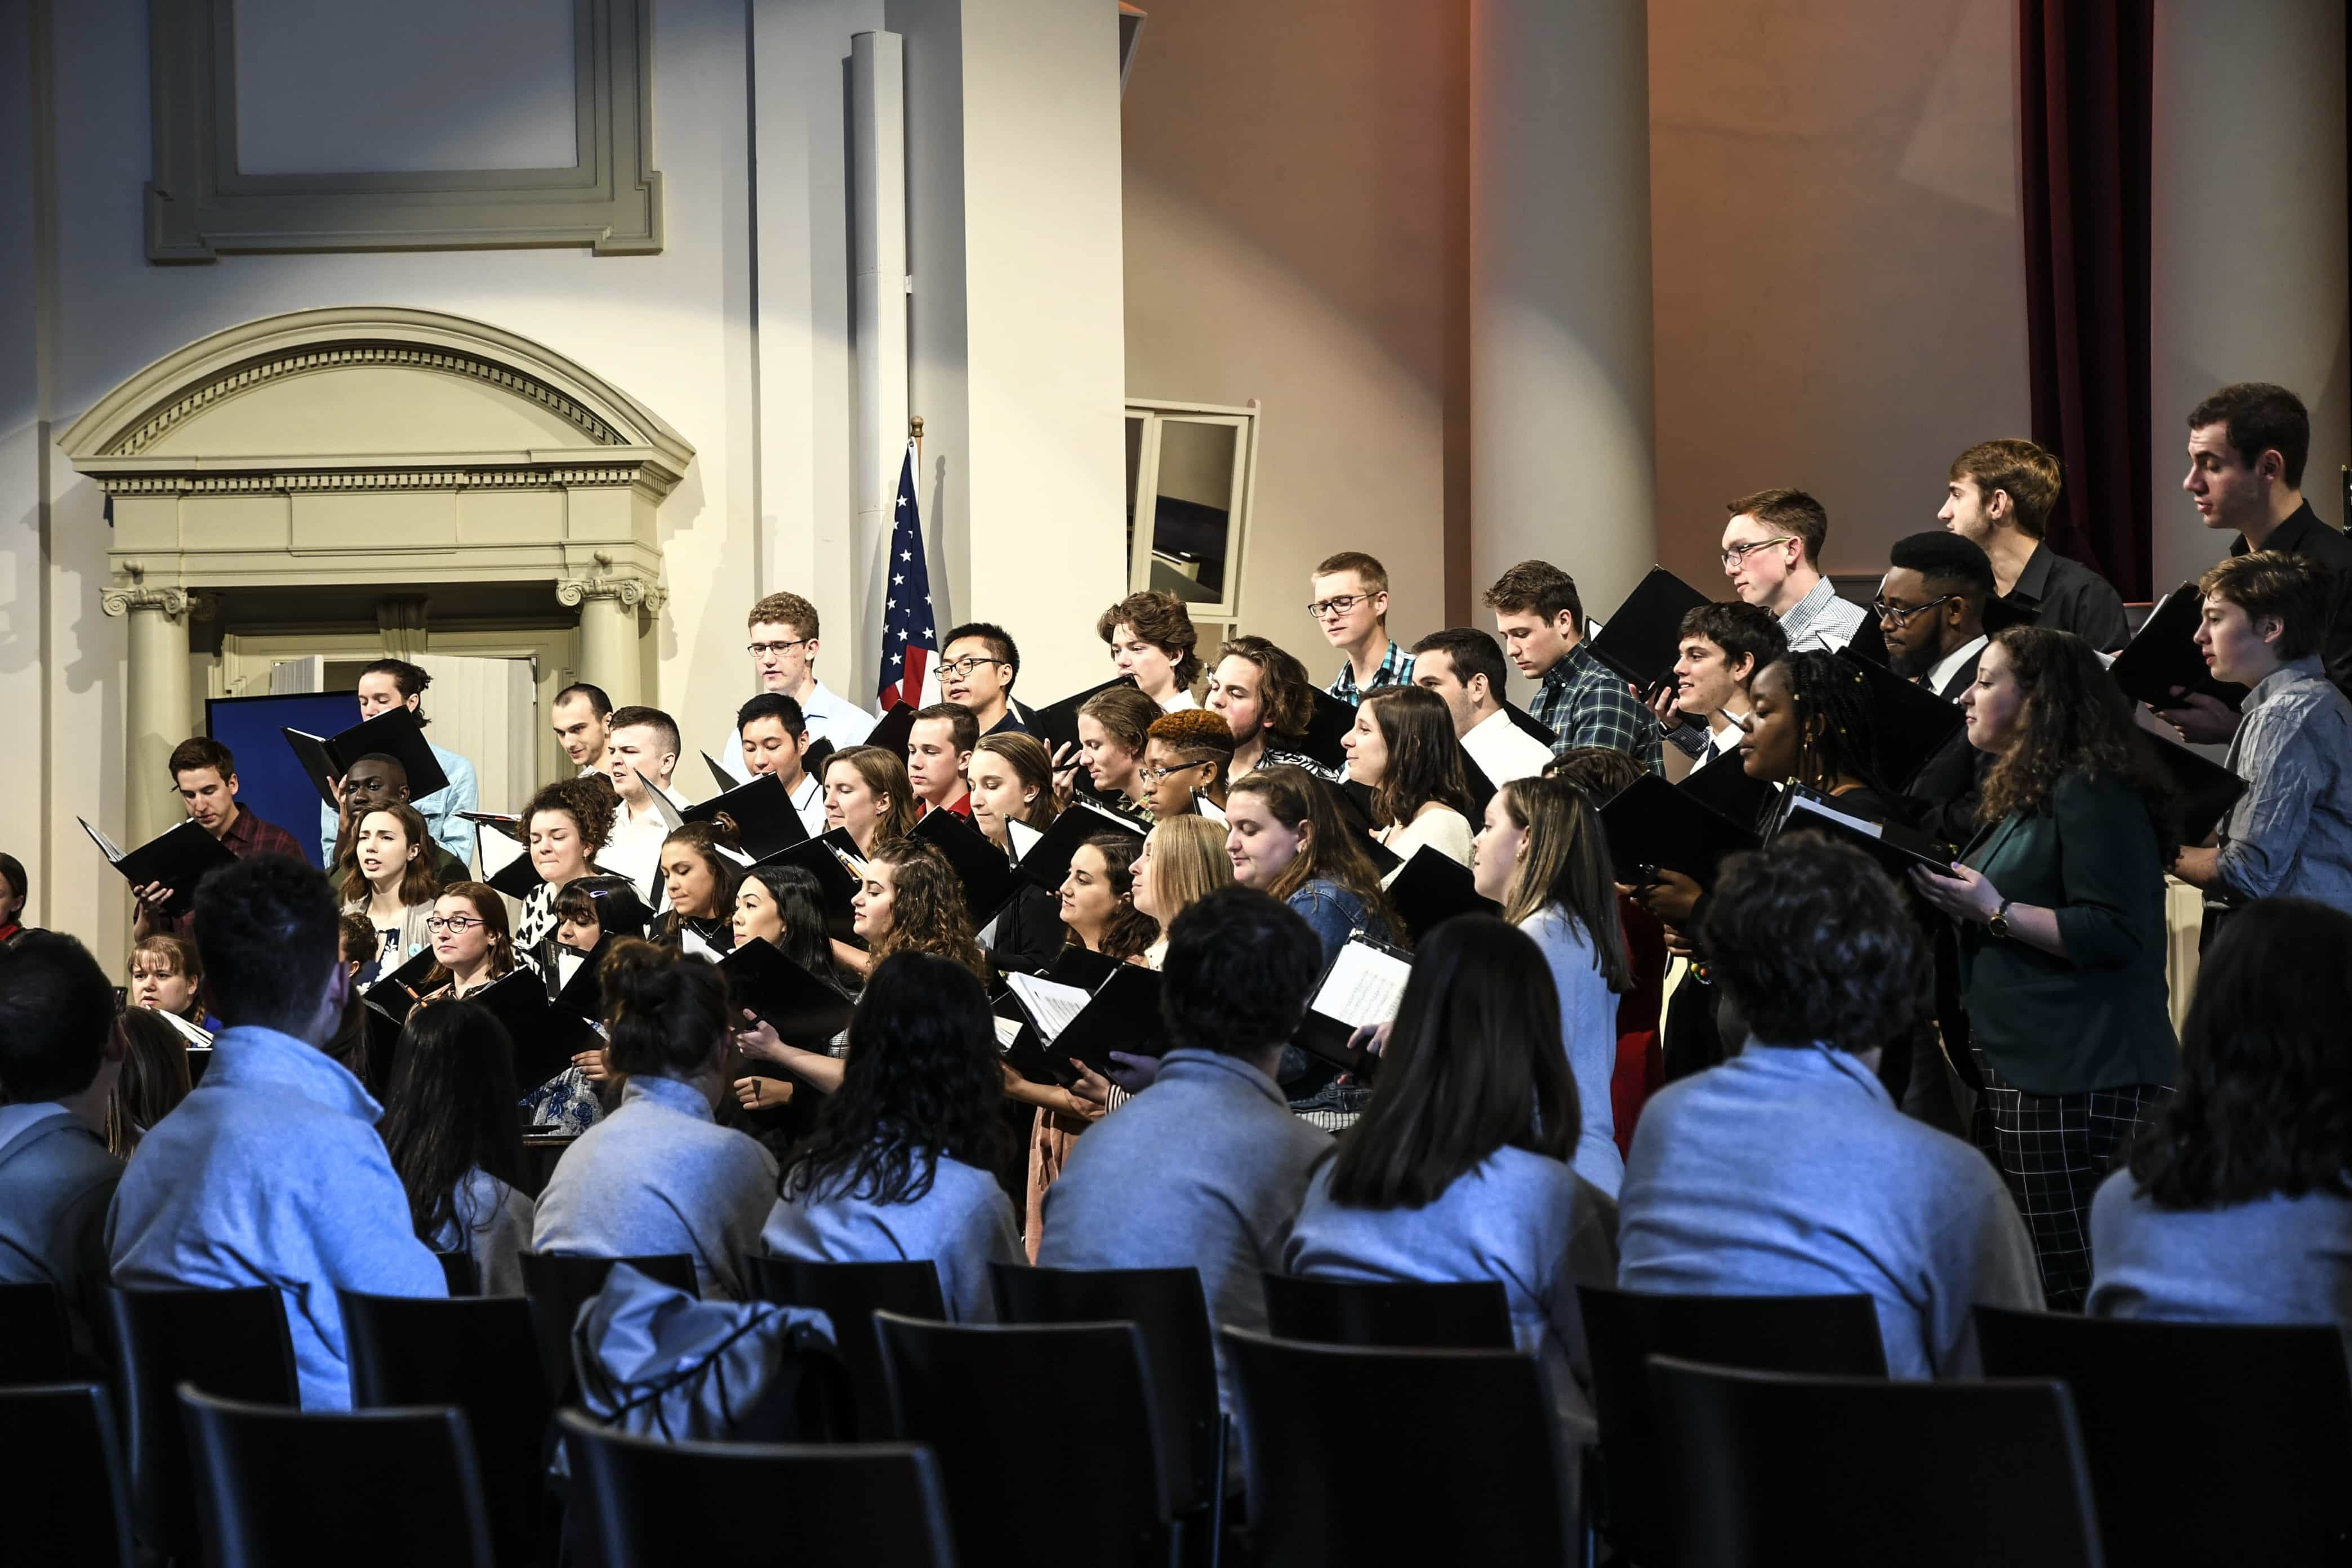 The Hendricks Chapel choir sang a mix of somber and upbeat tunes at